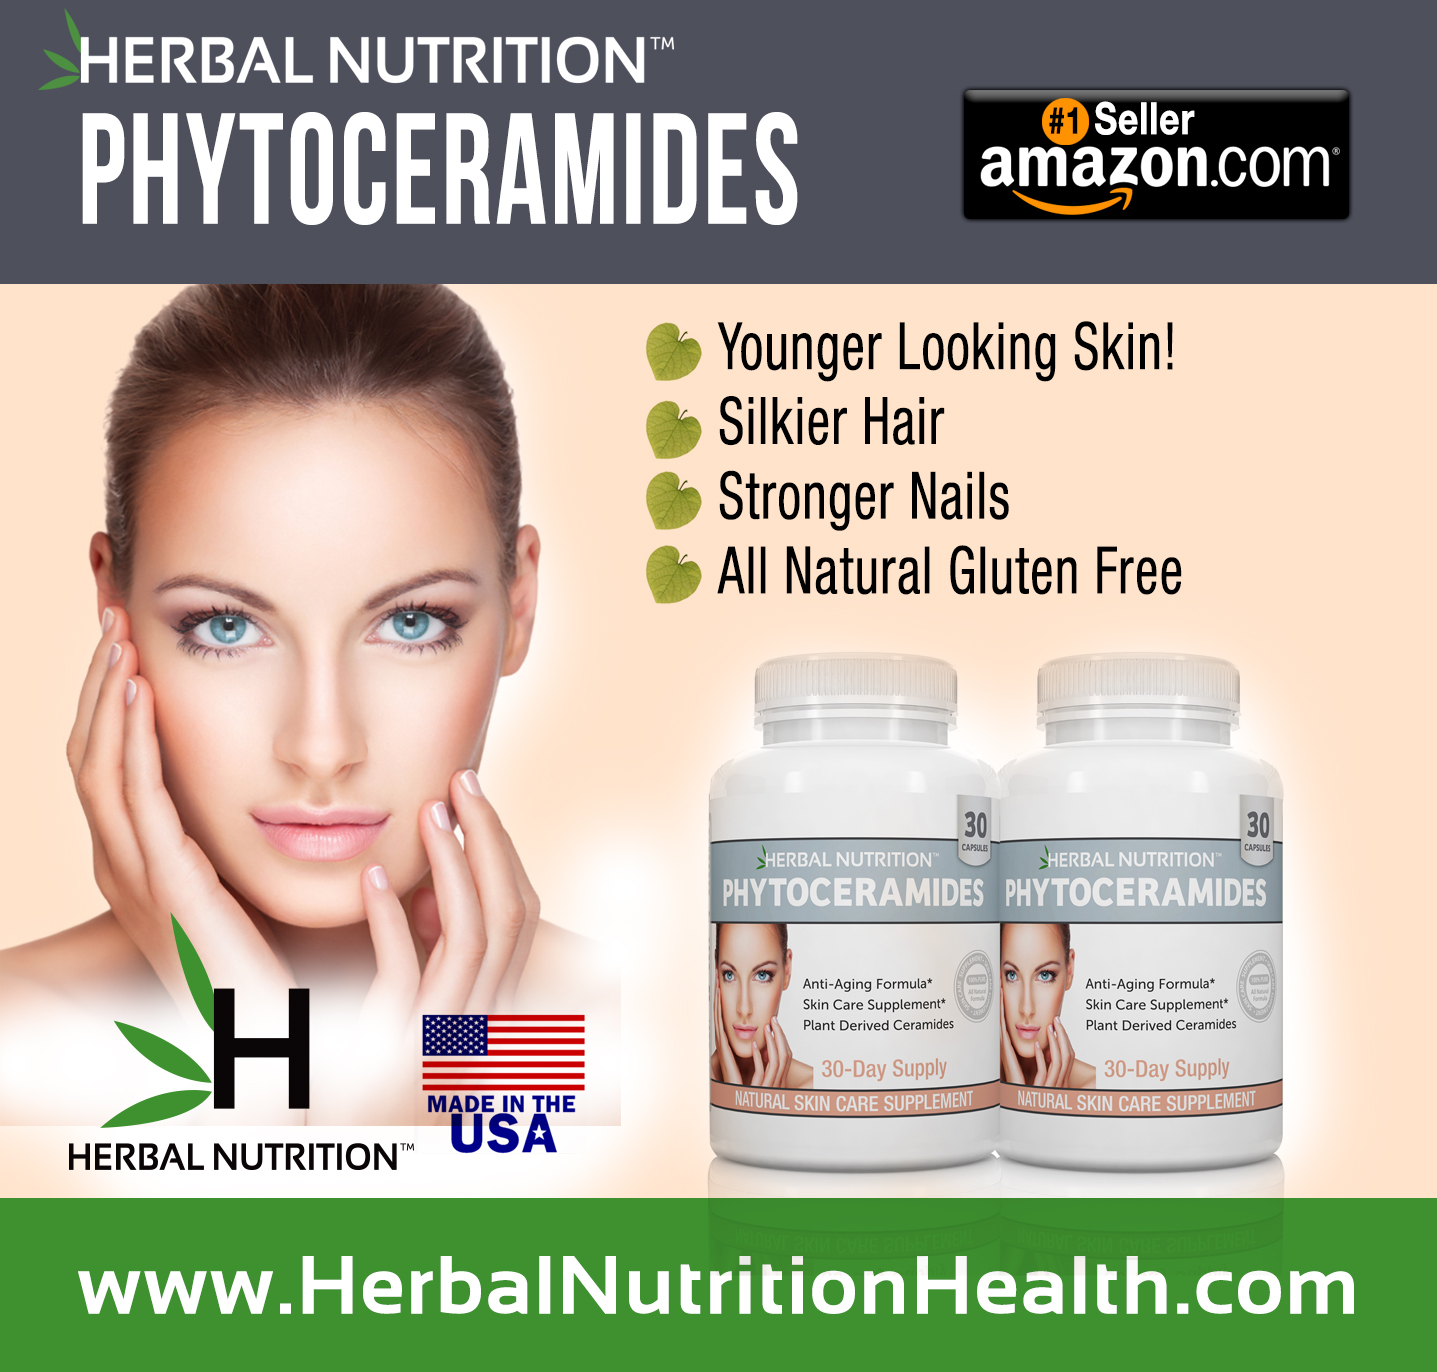 Phytoceramides Graphic